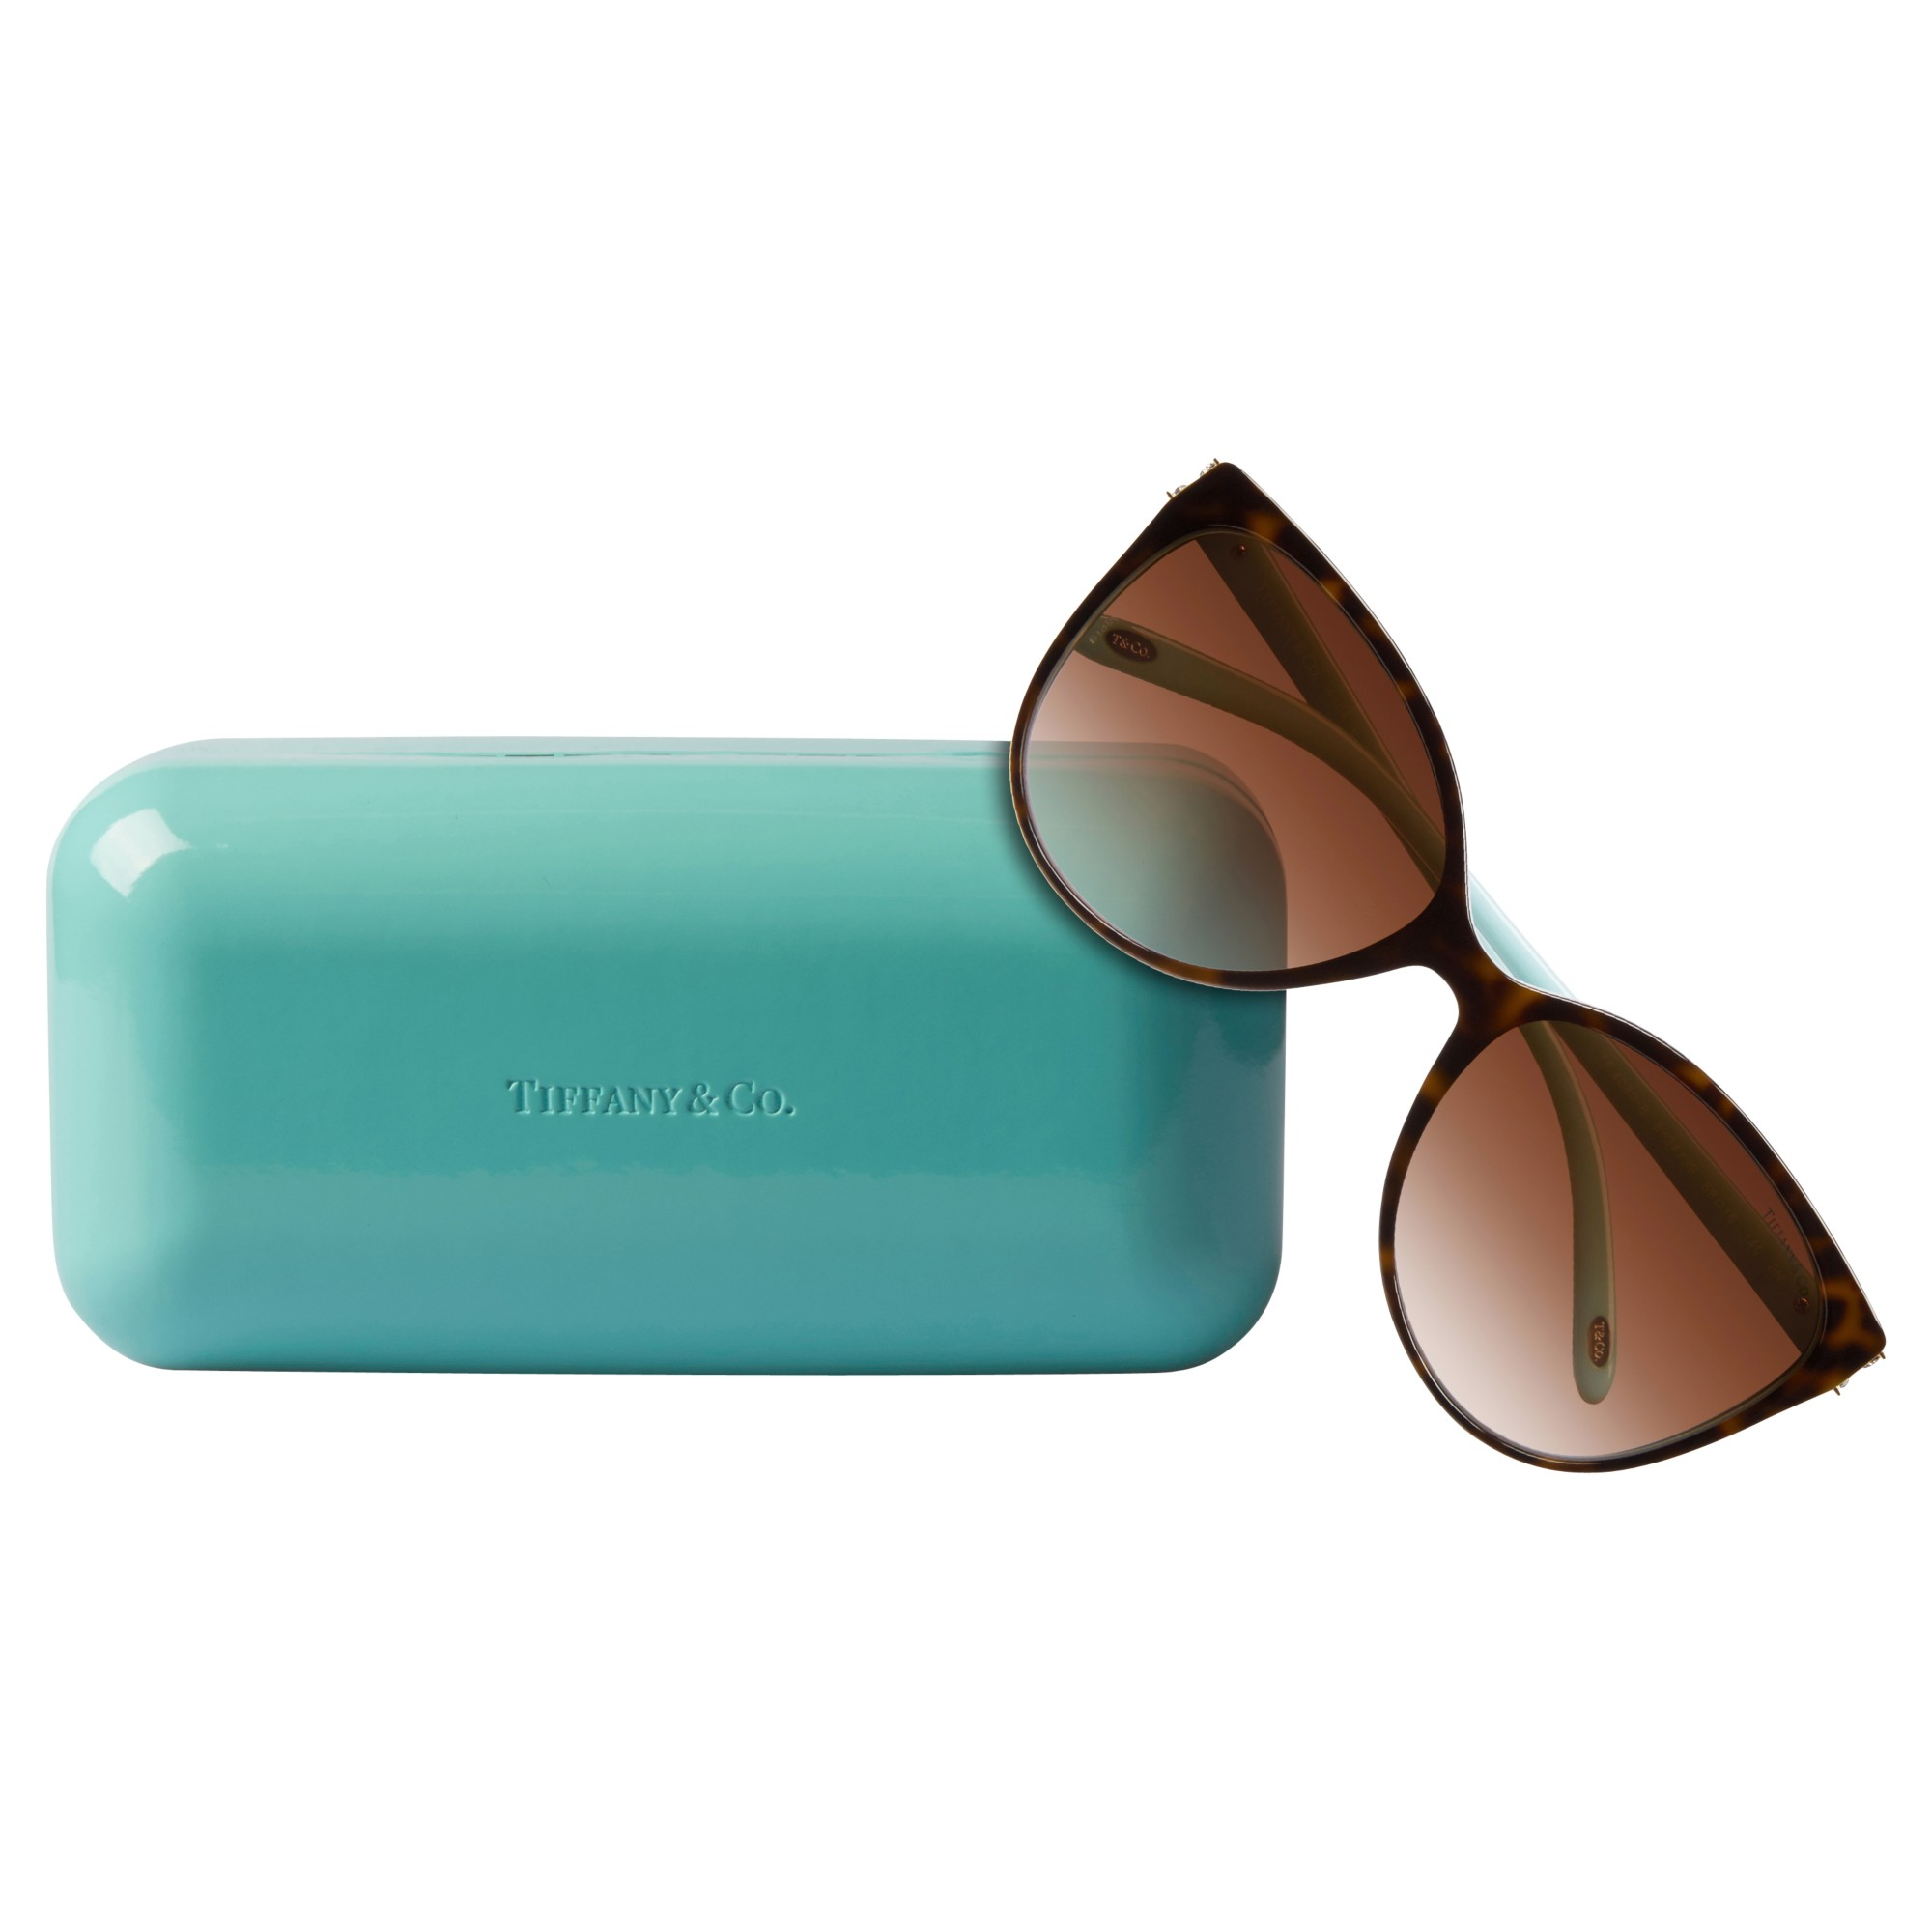 Tiffany & Co. Tf4089b Cat's Eye Sunglasses in Brown